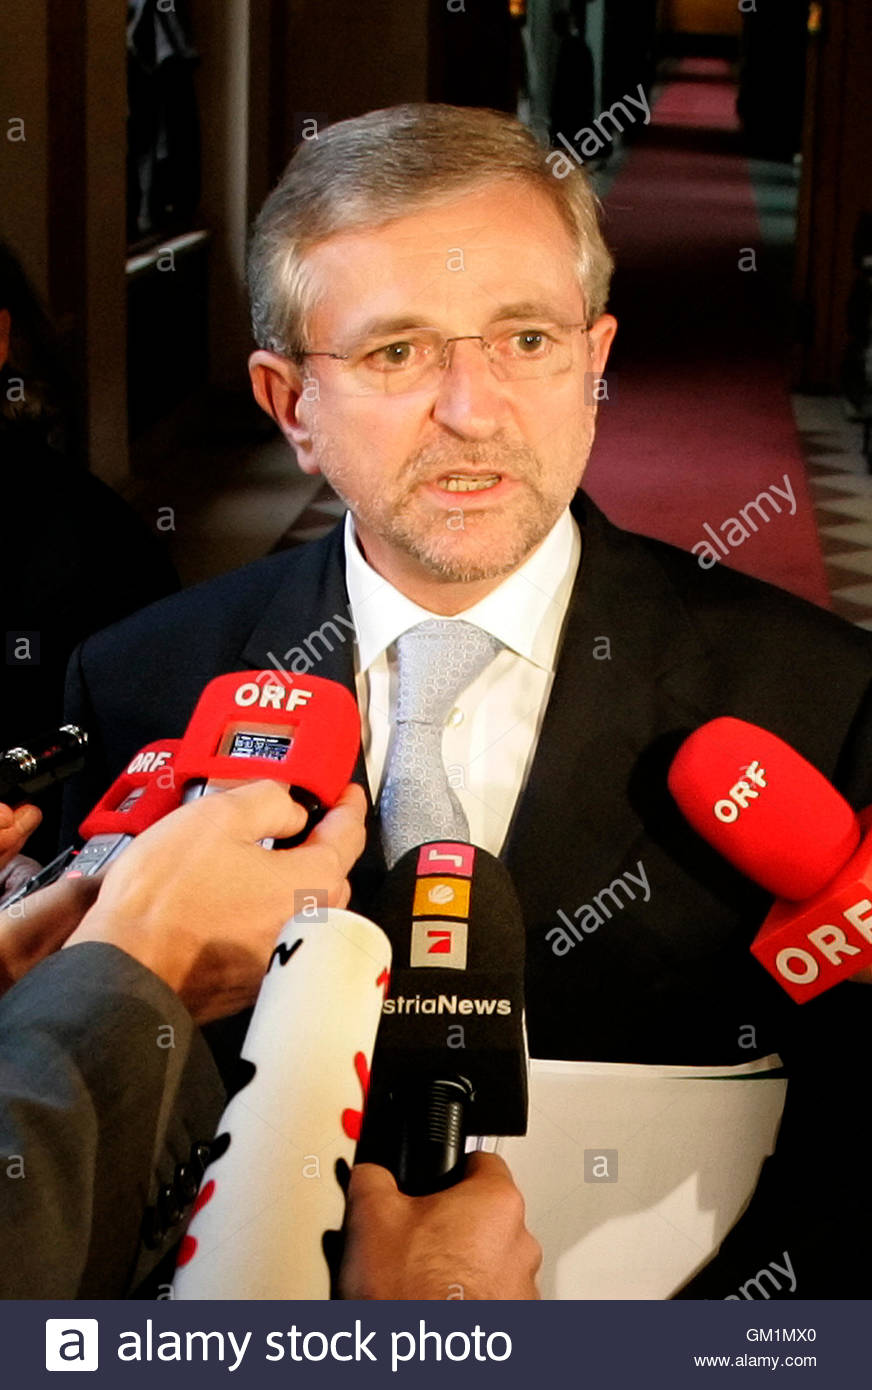 s finance minister wilhelm molterer answers journalist s s finance minister wilhelm molterer answers journalist s questions as he attends a meeting in vienna 29 2008